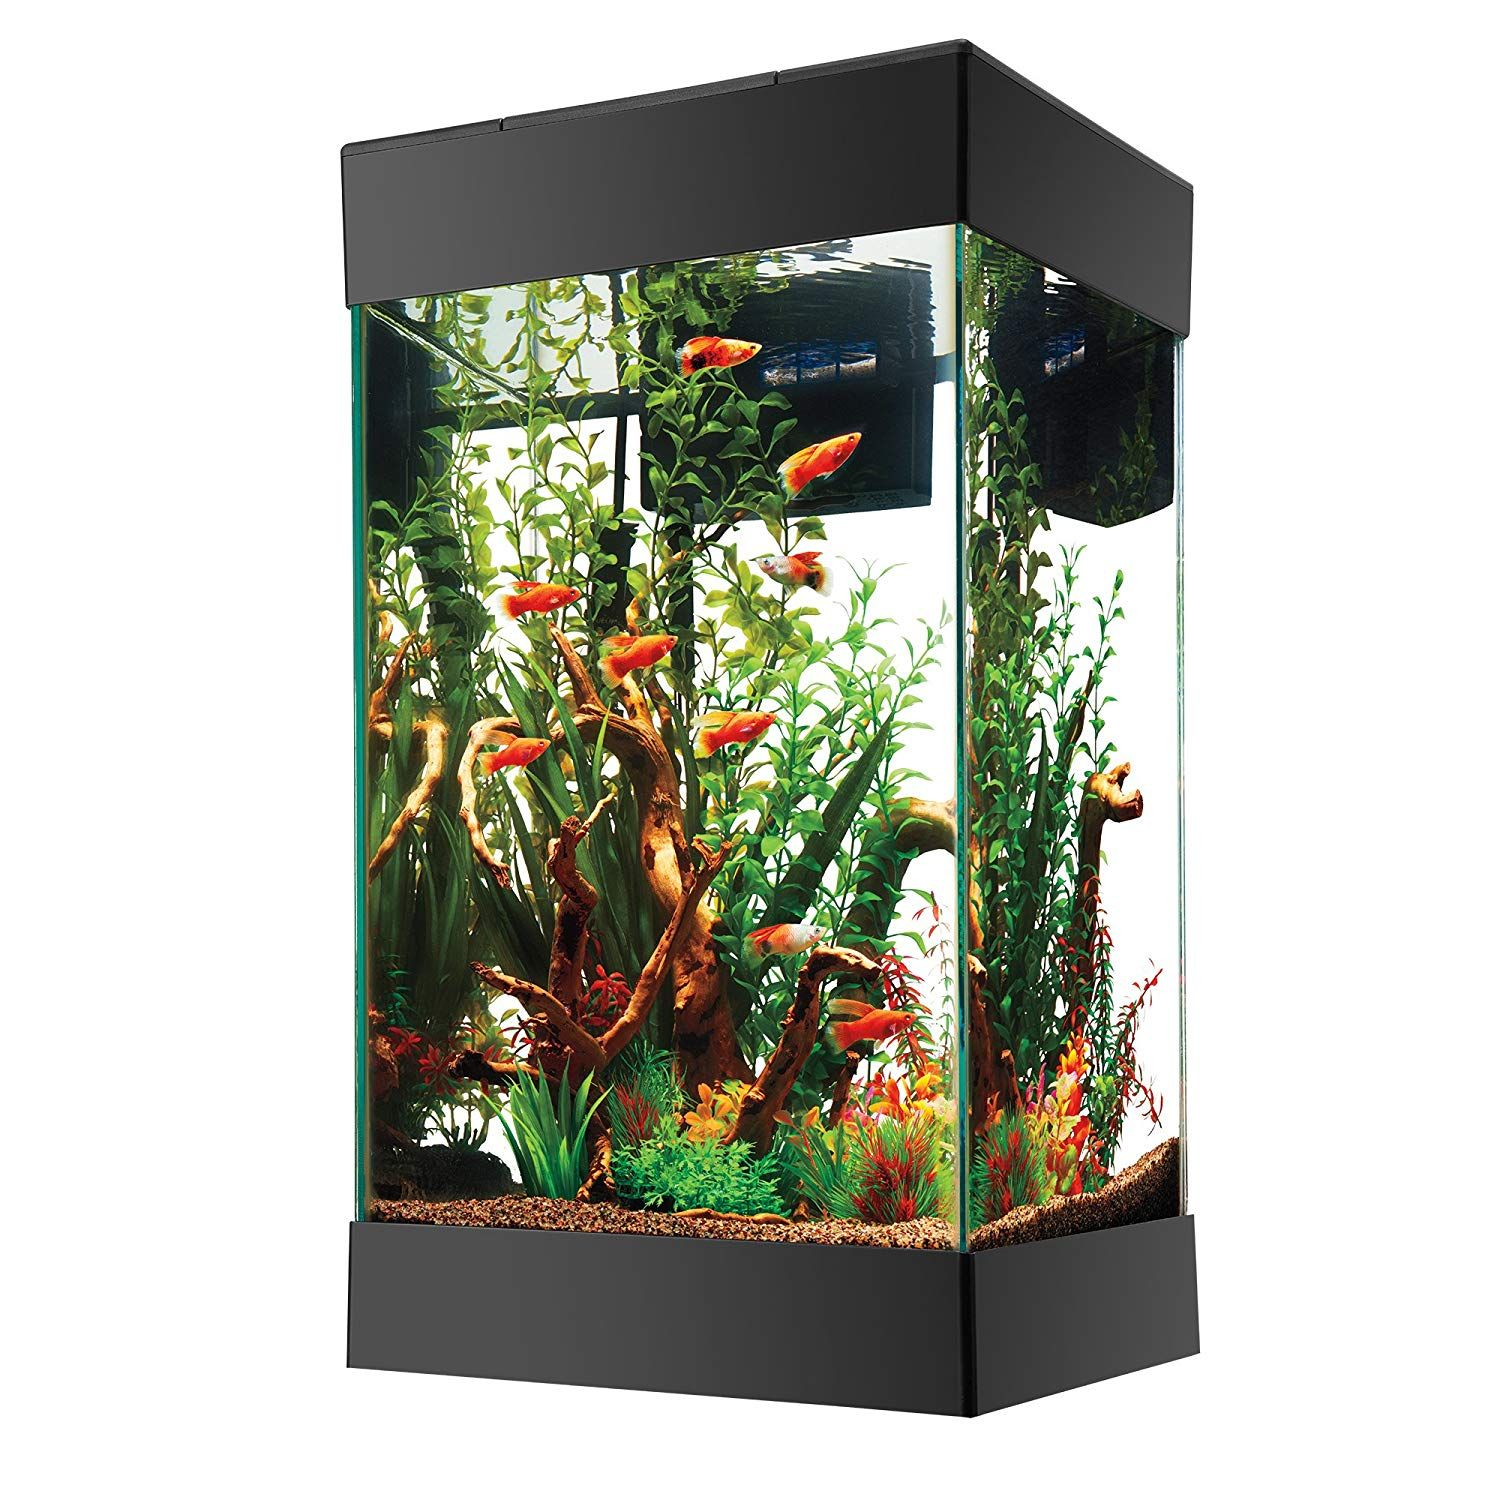 Salt Water Aquarium Set Up Kit Includes Size 15 Glass Aquarium Submersible 50w Preset Heater Low Profile Hood Aquarium Kit 20 Gallon Aquarium Stand Aquarium